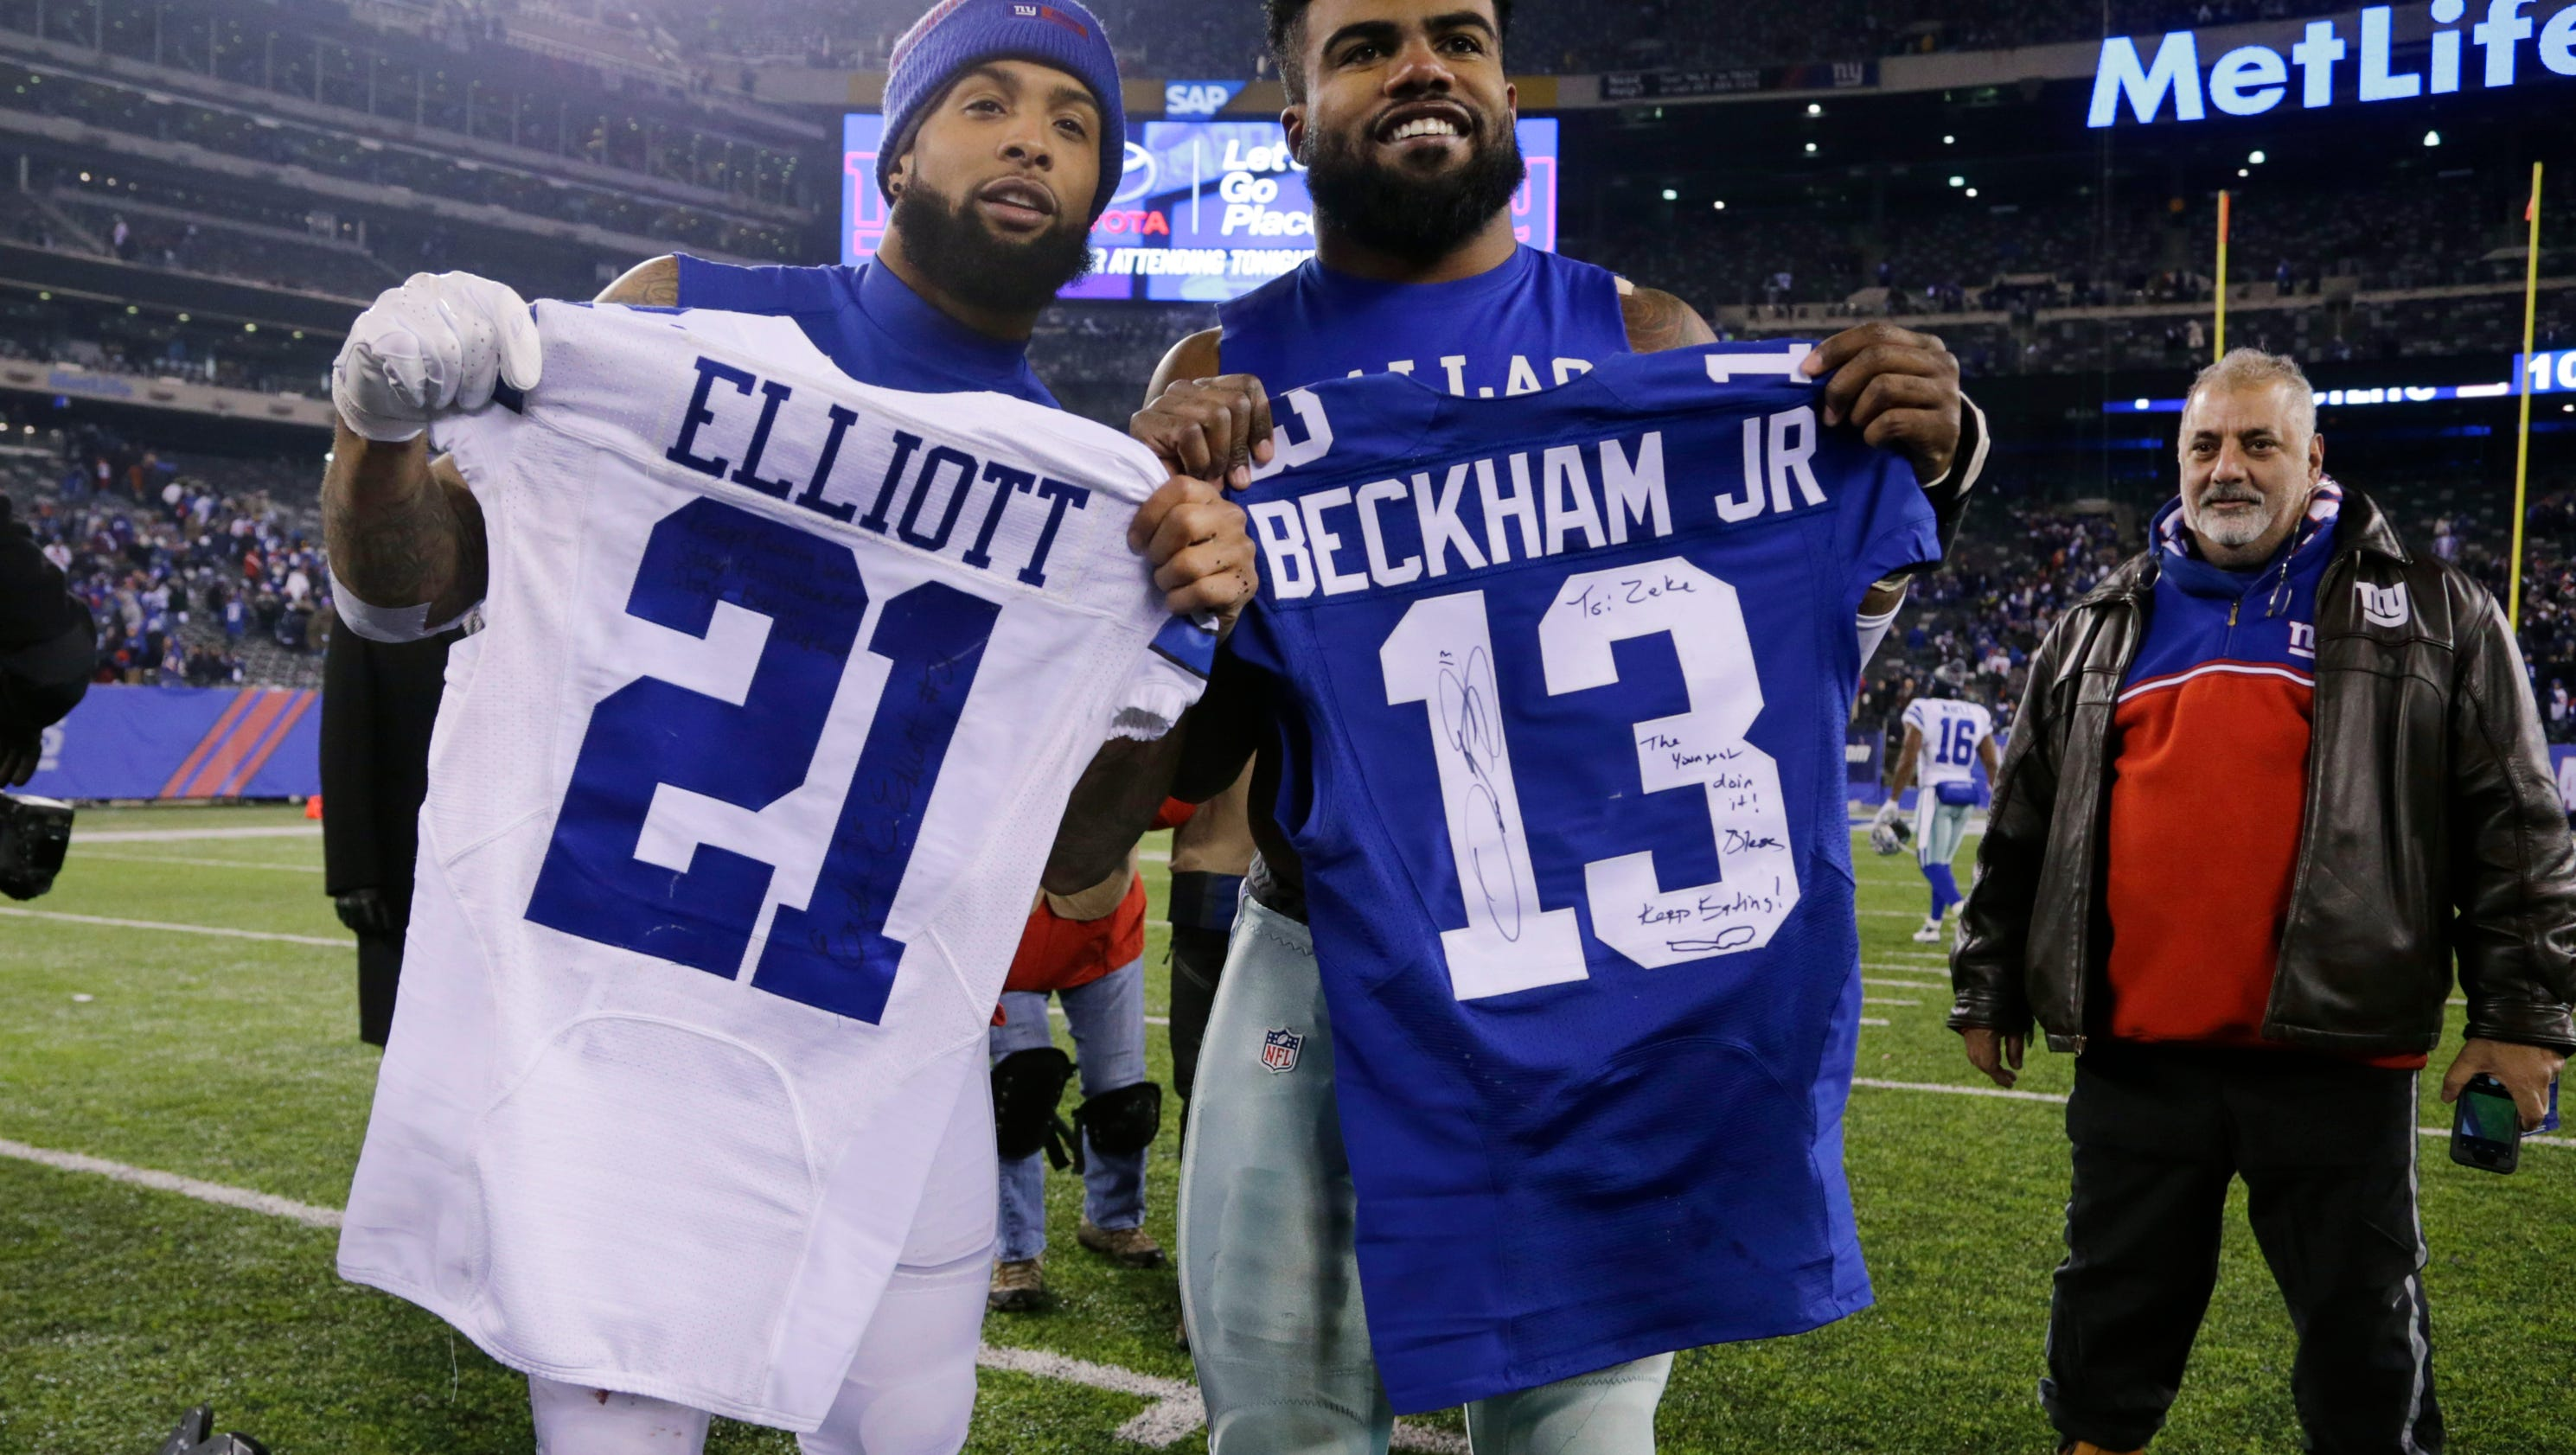 Jersey Swap Nfl Players Share Shirts Off Back